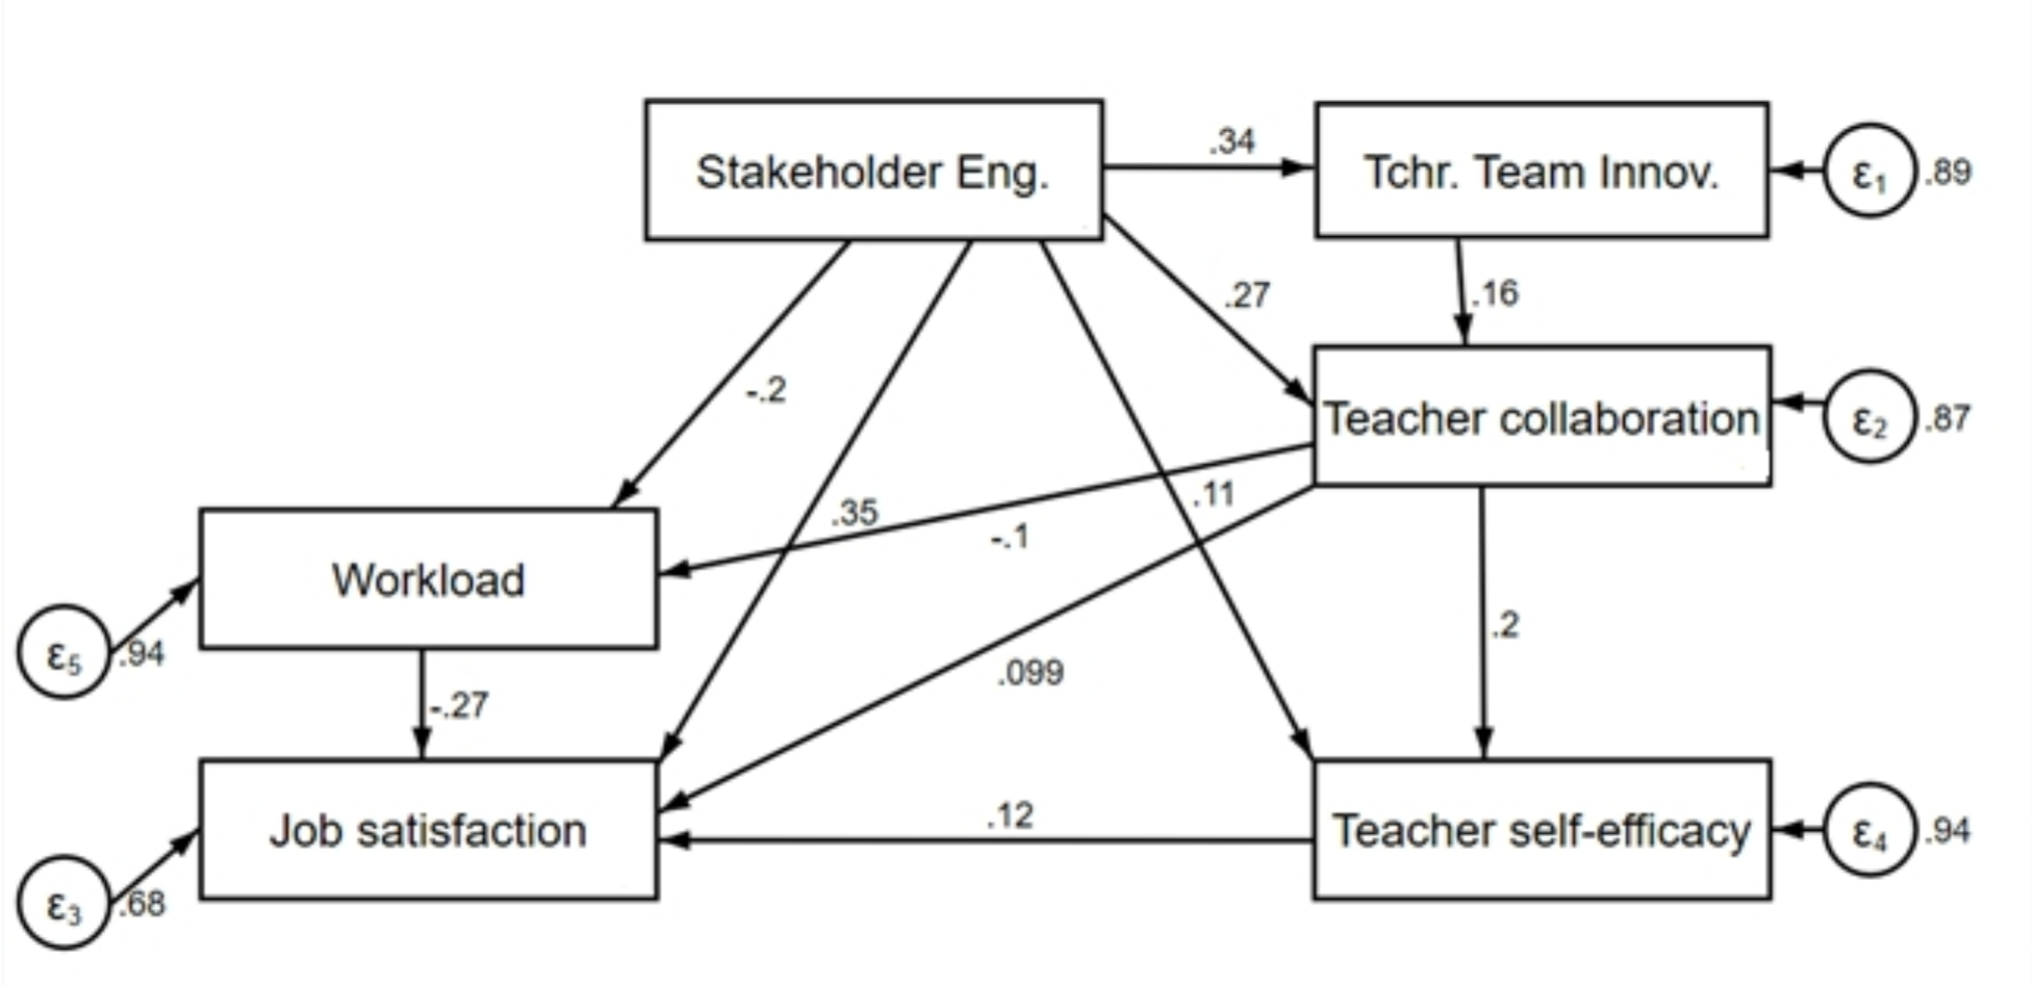 Educational Technology, Workload and Teacher Retention: the importance of stakeholder engagement